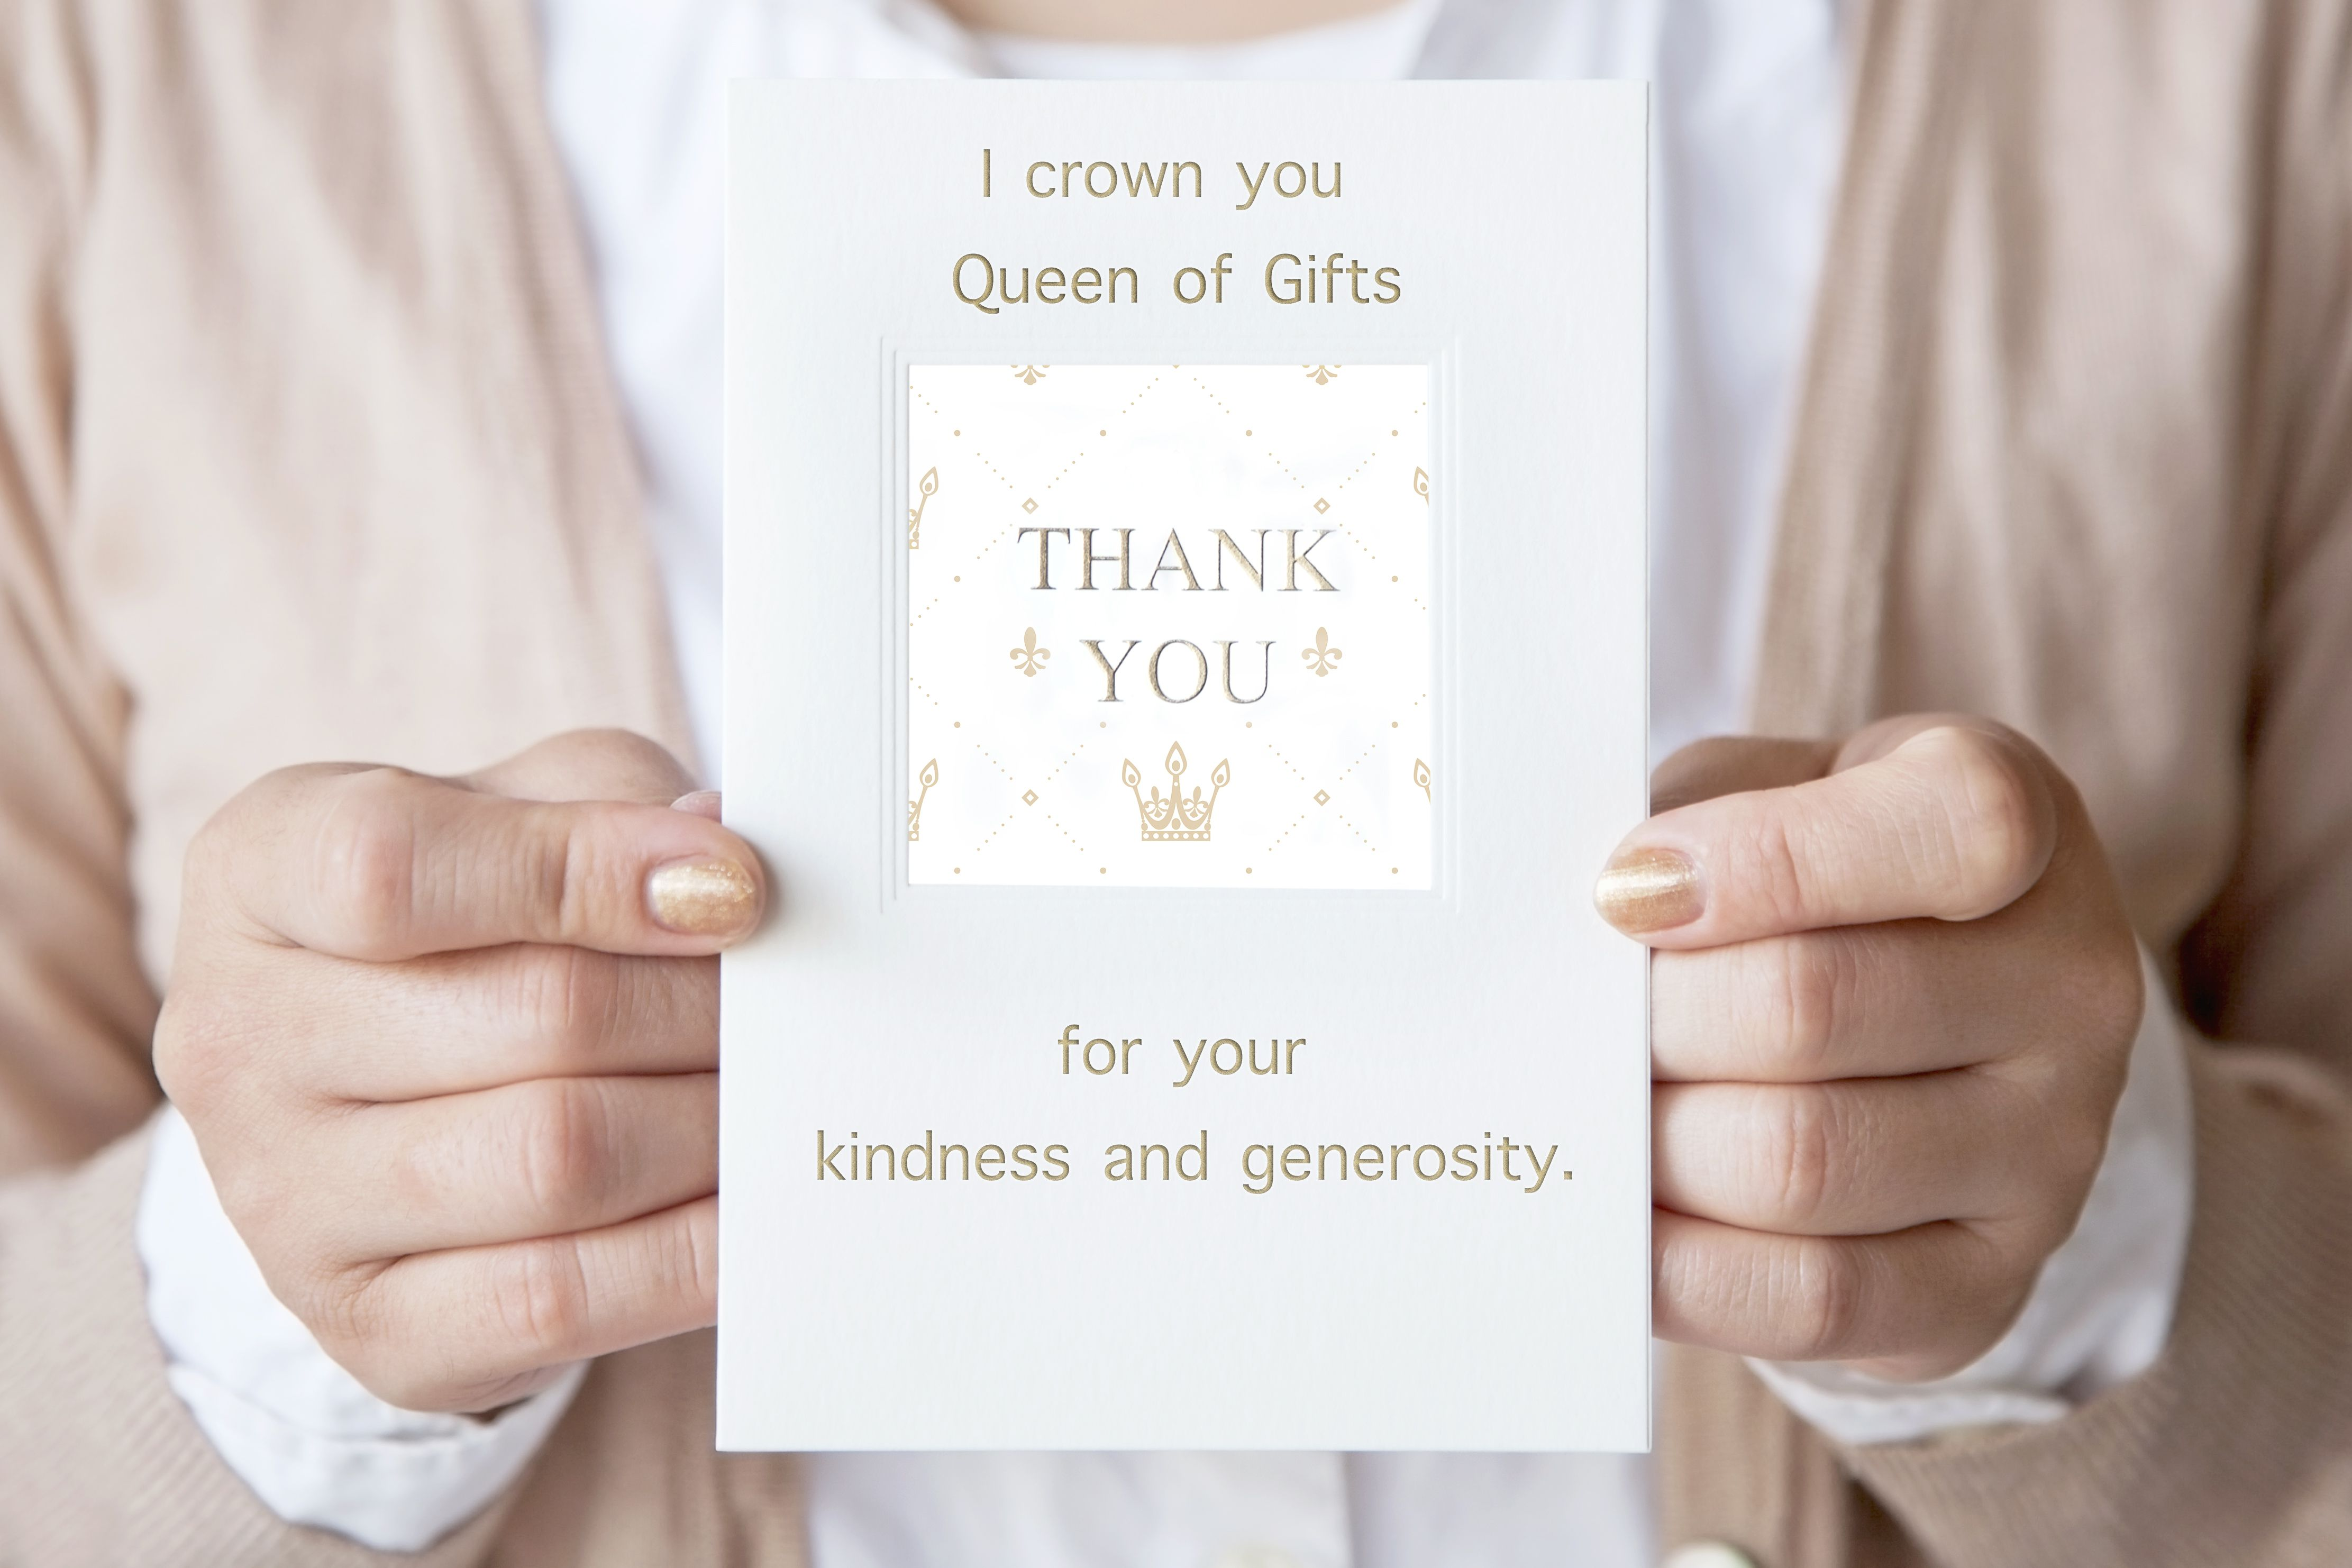 004 Unusual Thank You Card Wording For Baby Shower Group Gift Highest Clarity Full